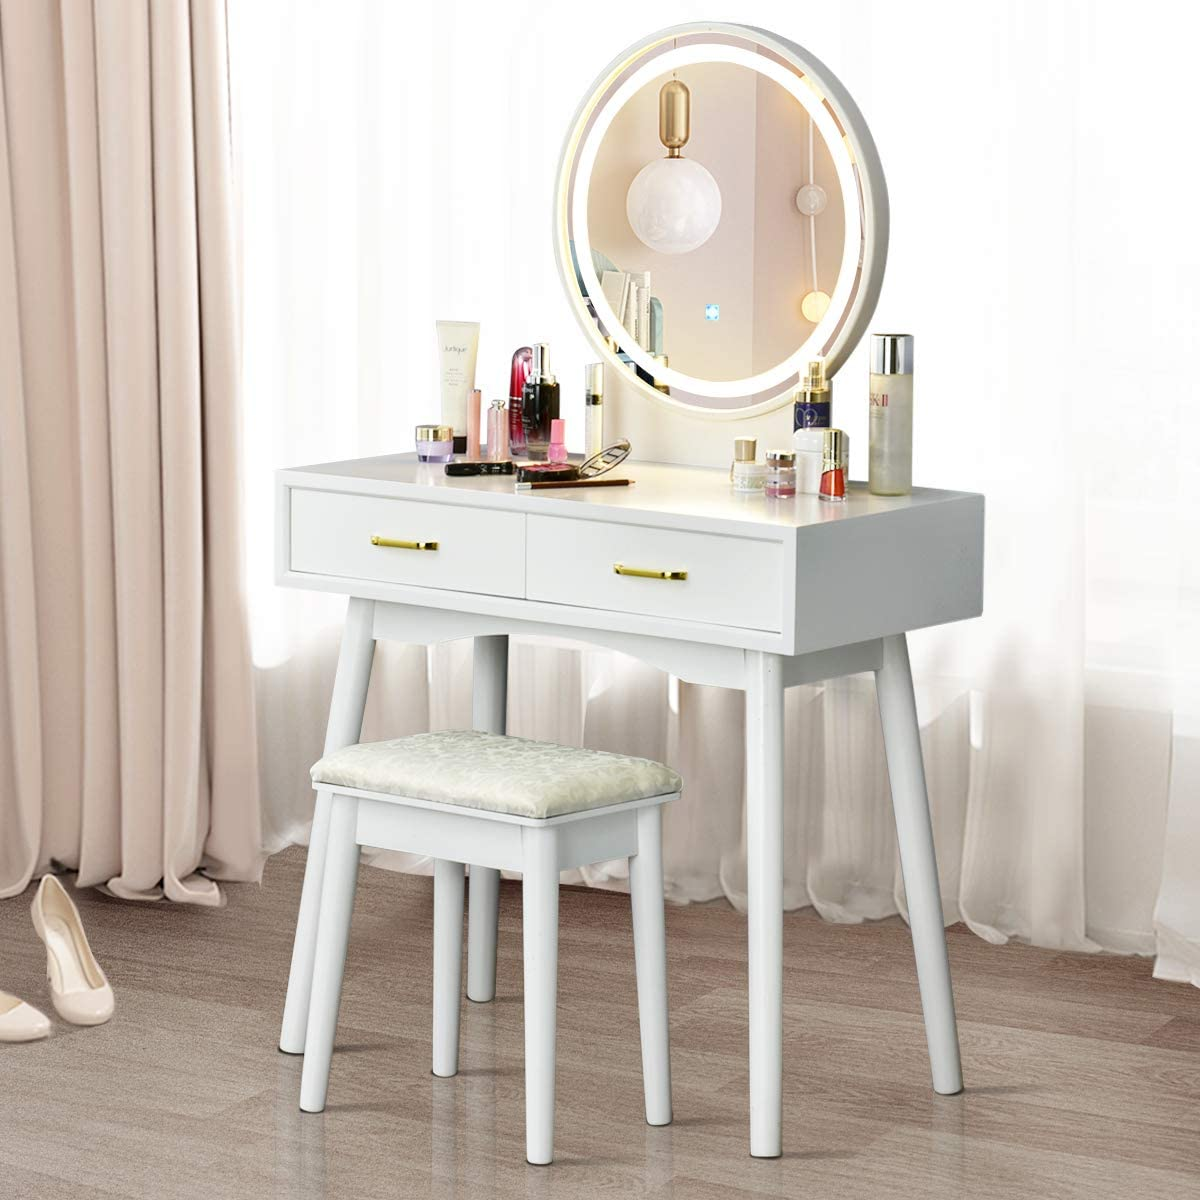 3 Color Lighting Modes White CHARMAID Vanity Set with Touch Screen Dimming Lighted Mirror Modern Bedroom Makeup Dressing Table with 2 Sliding Drawers and Cushioned Stool for Girls Women